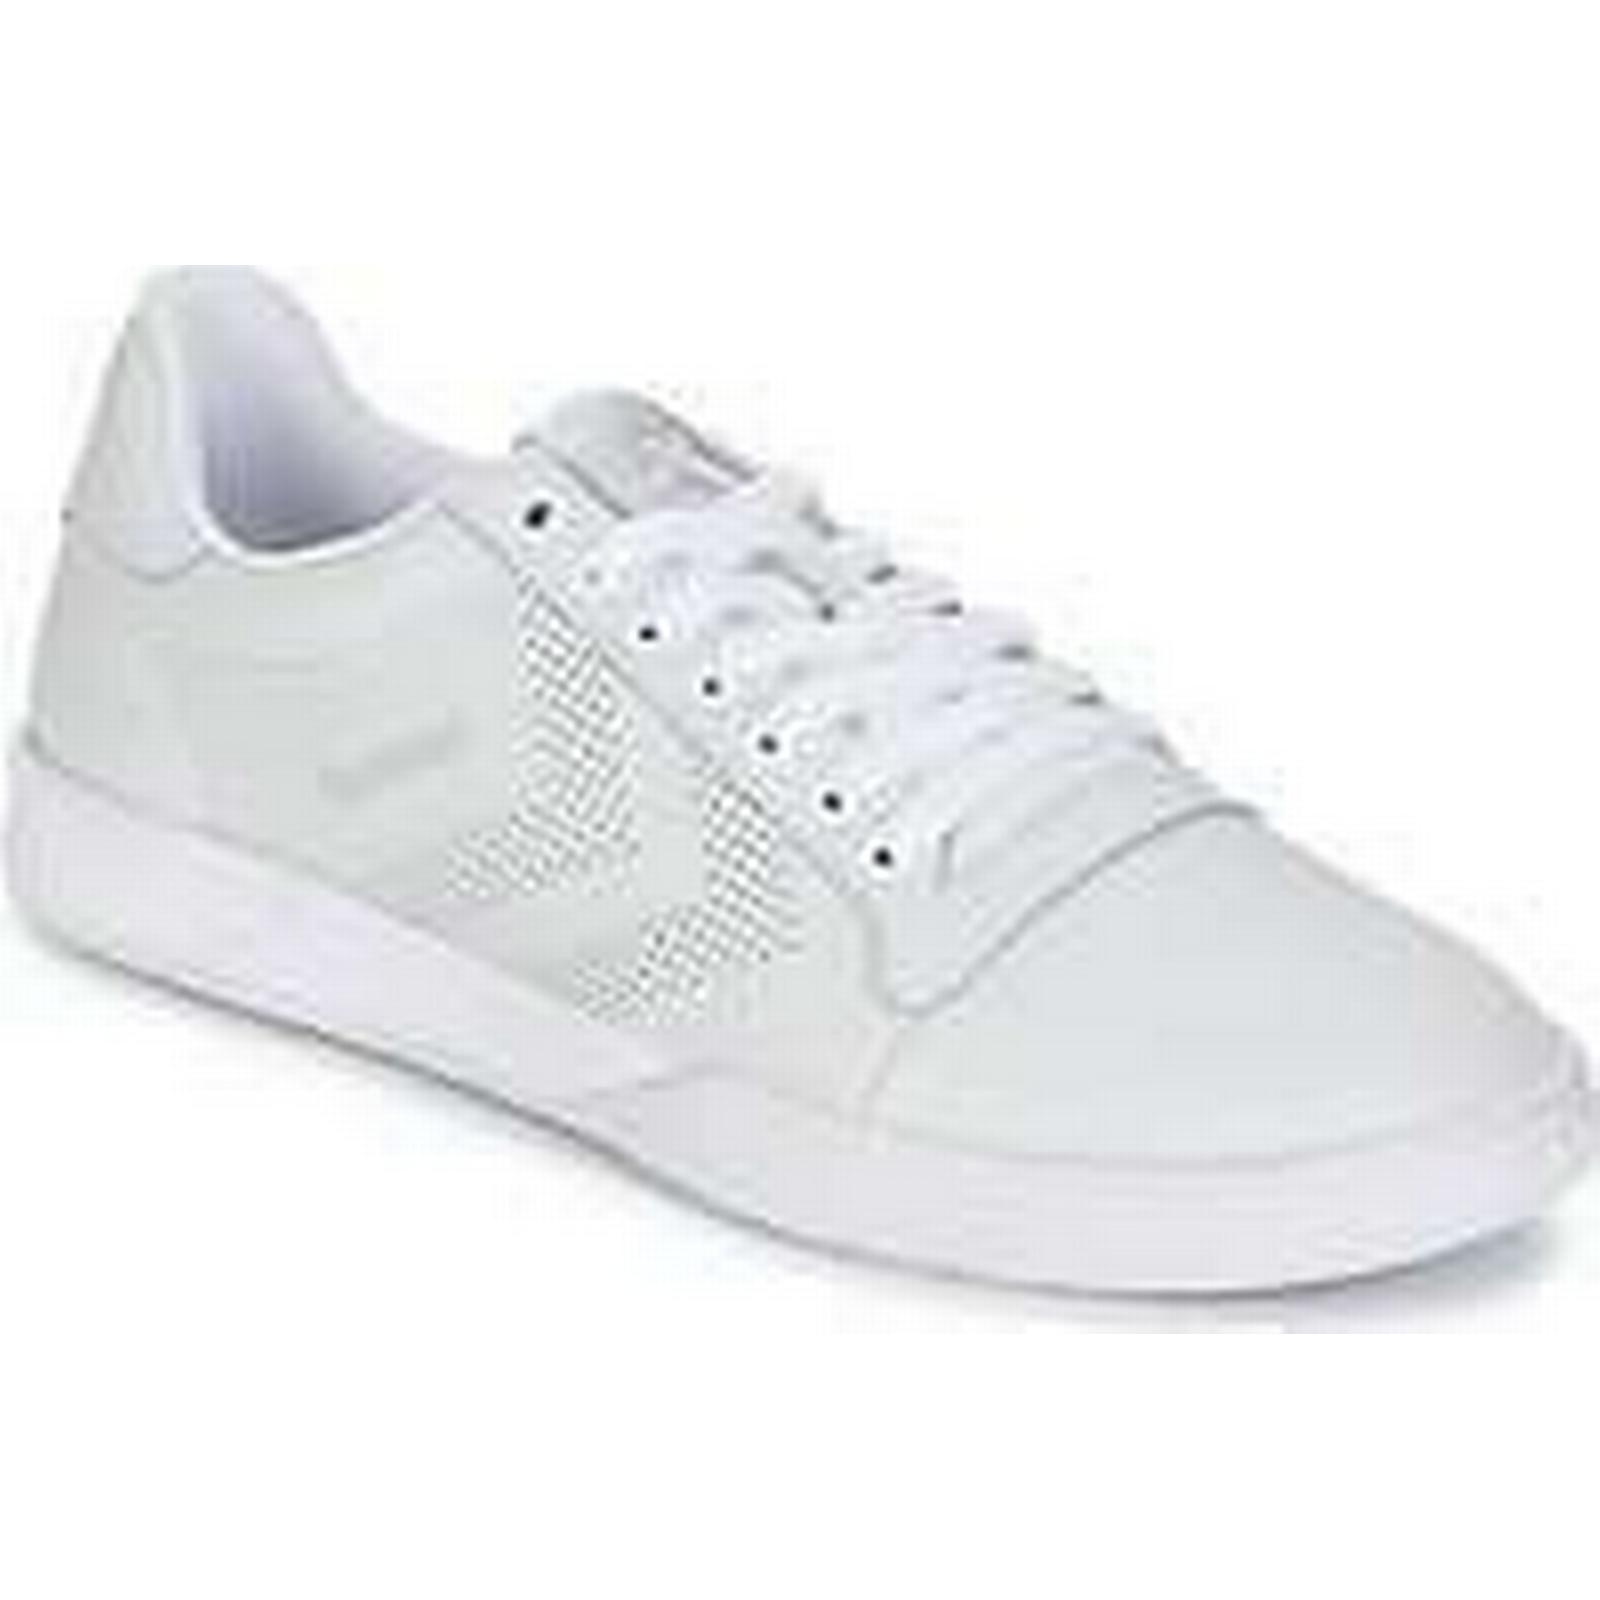 Spartoo.co.uk women's Hummel HML STADIL LO women's Spartoo.co.uk Shoes (Trainers) in White 6345ce